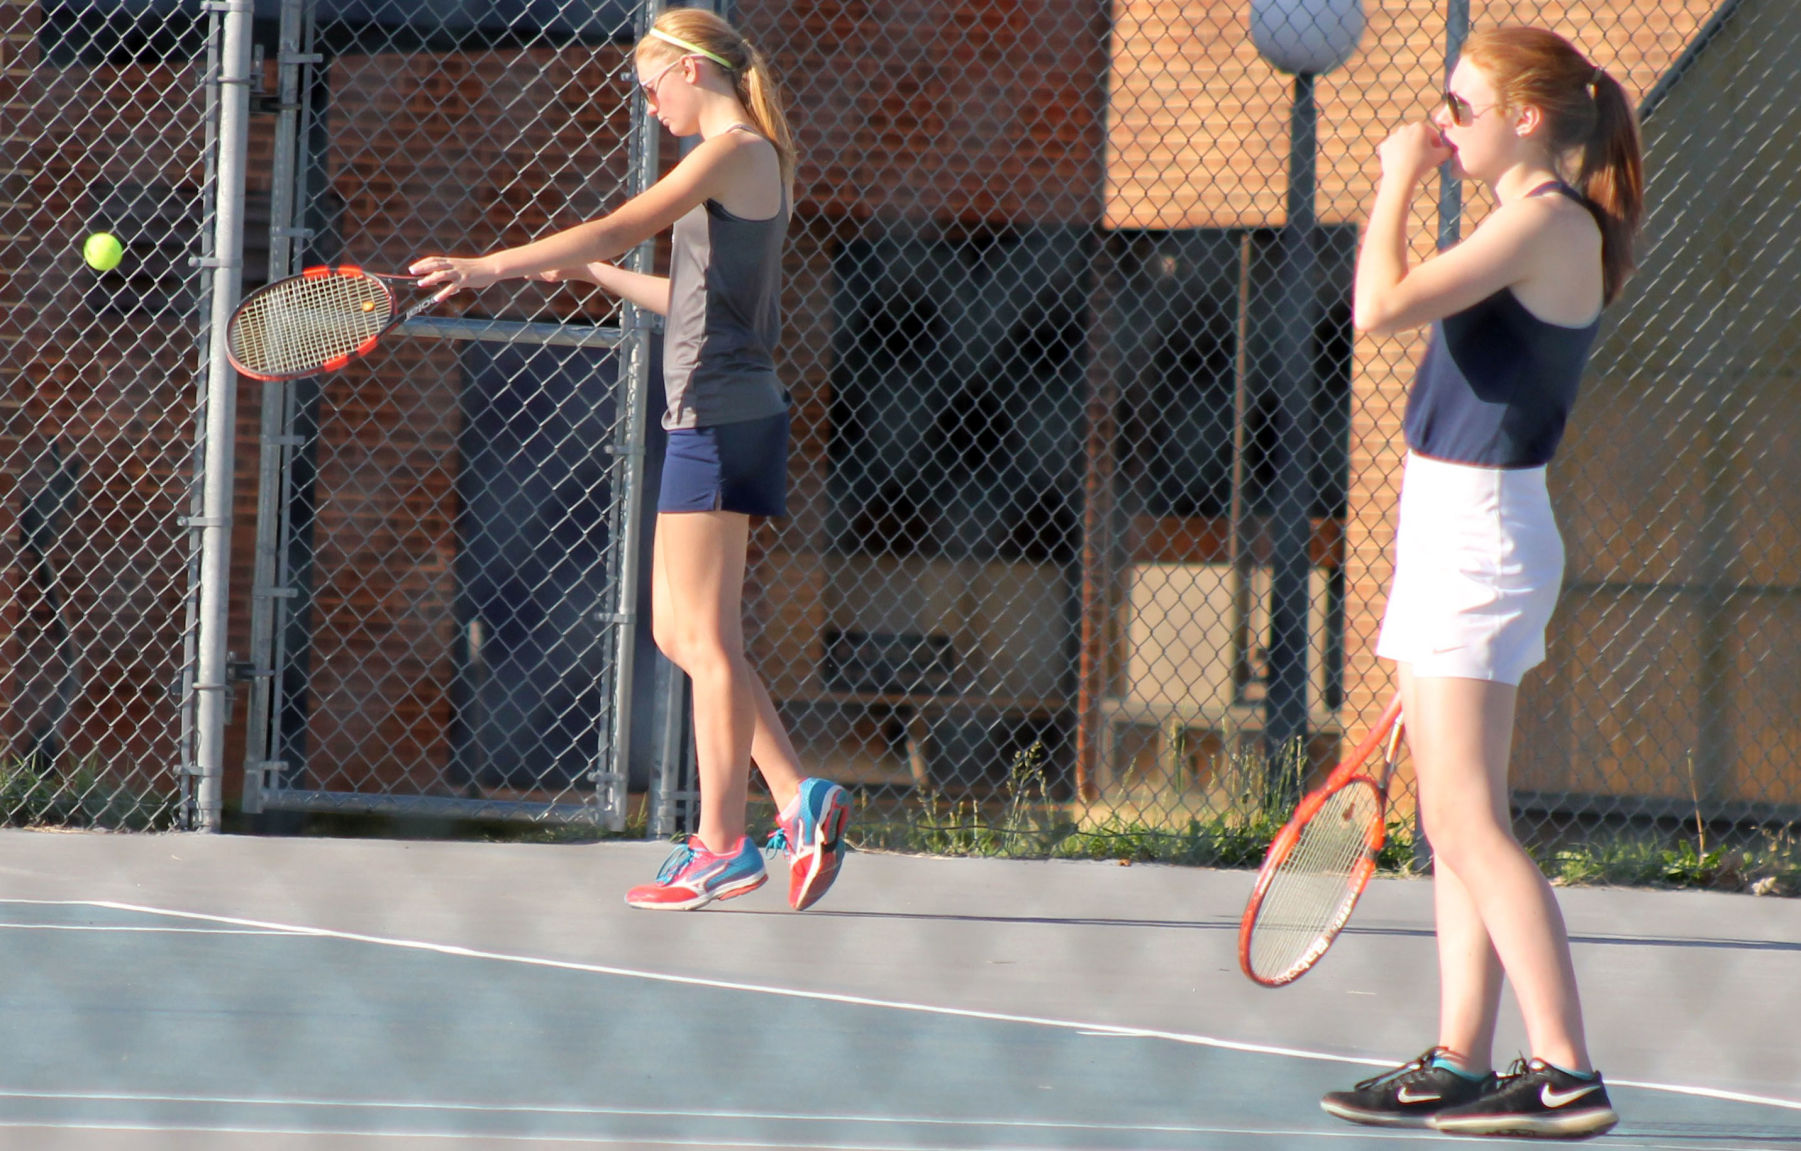 Appomattox tennis playoff update; Servis sisters' success continues